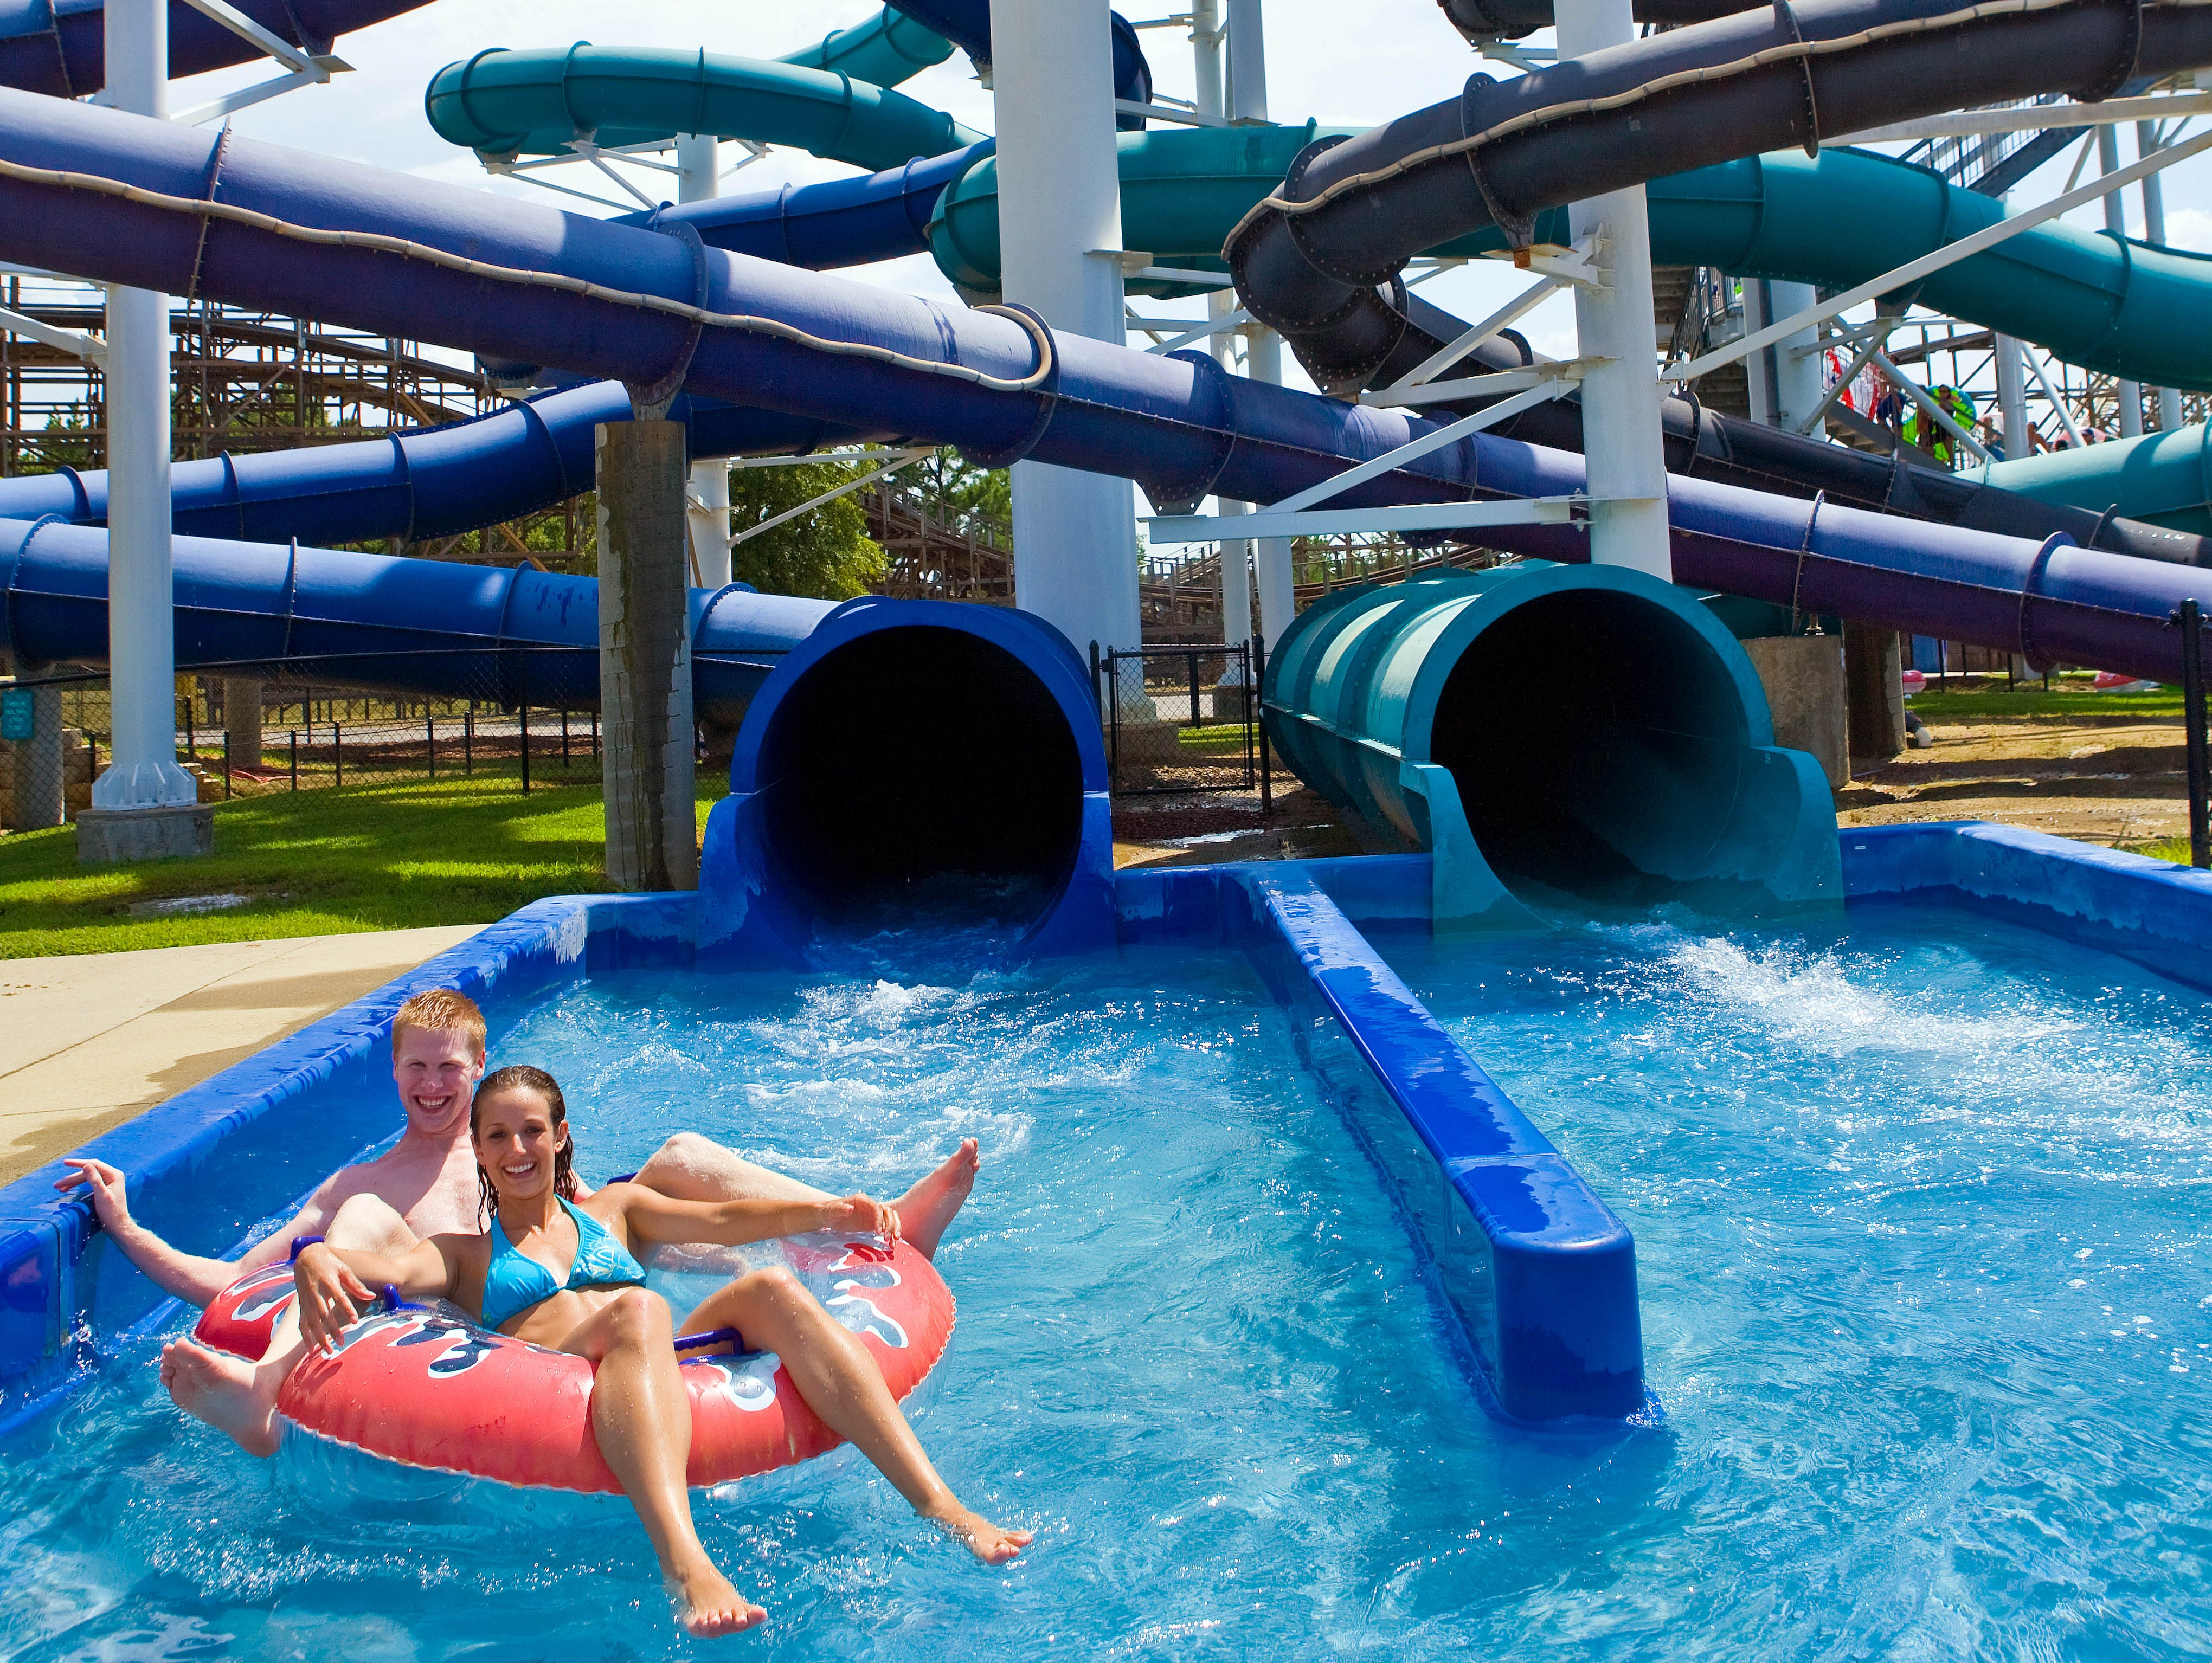 Greenville News Insiders, check out our exclusive ticket deals and discounts to Carowinds!